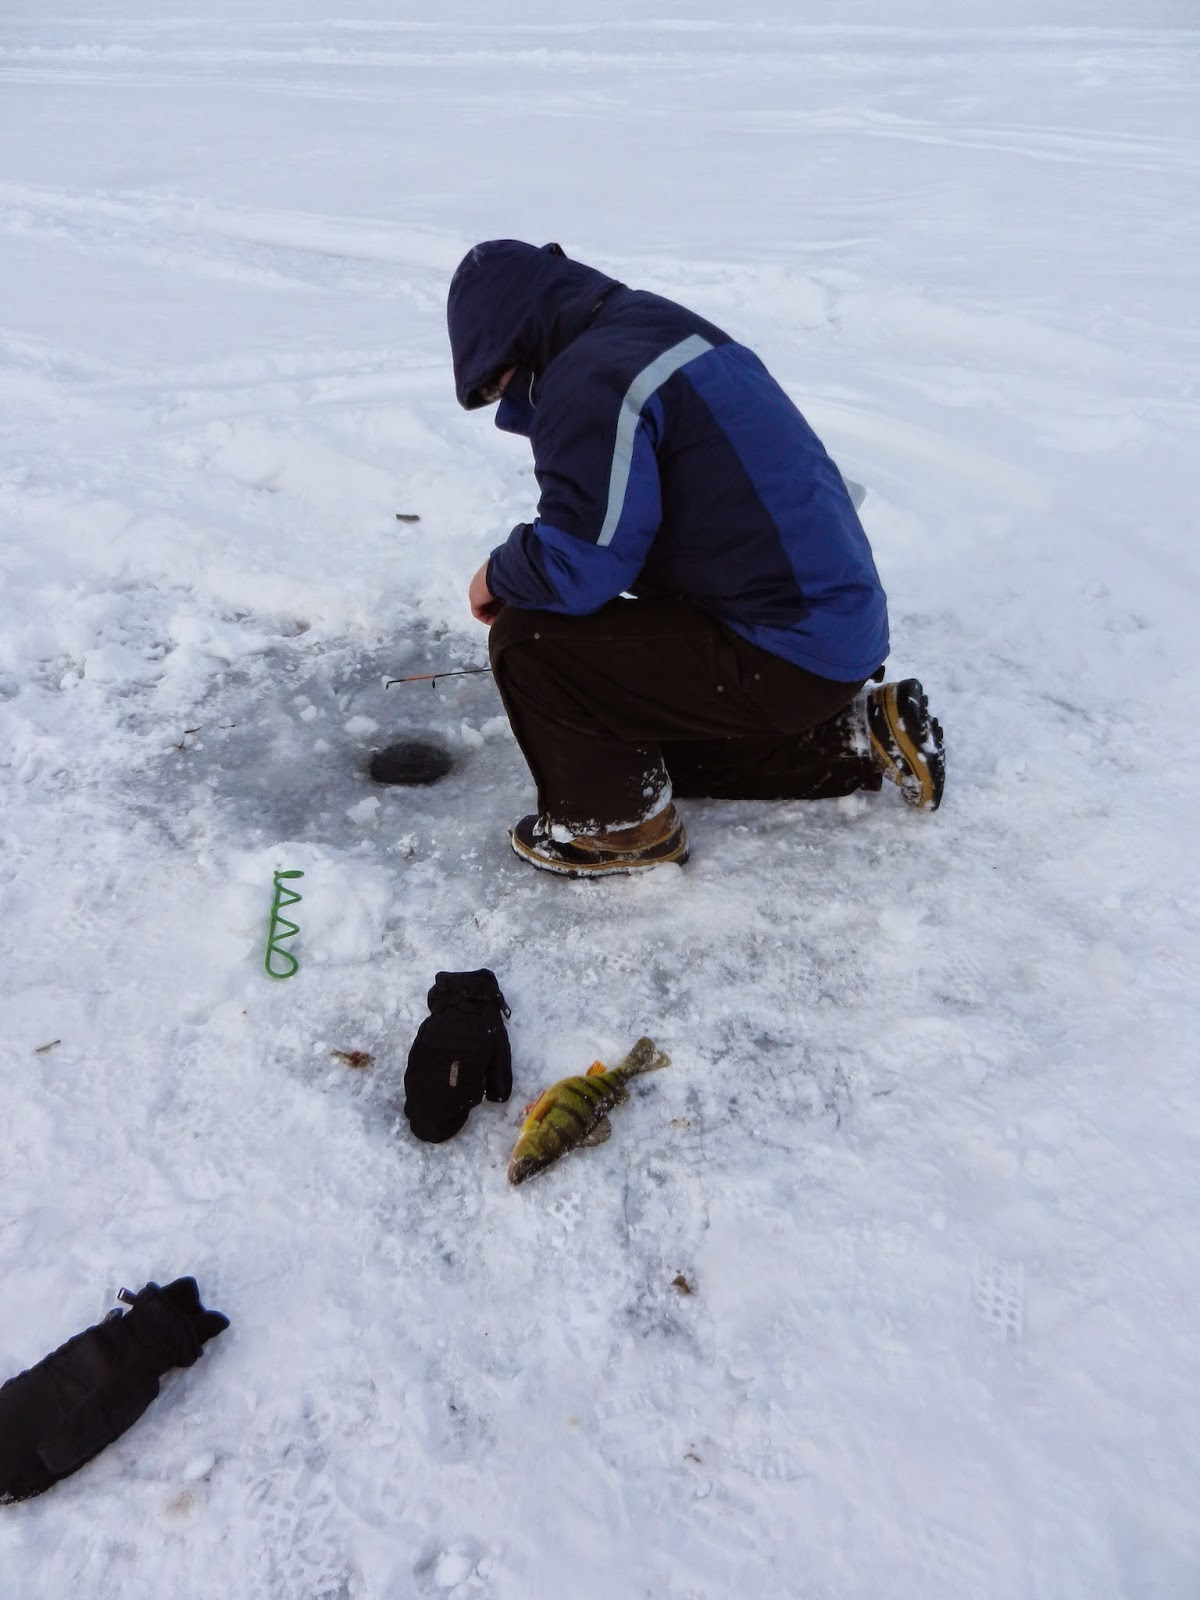 Fishing hunting in oswego county ny sandy pond on ice for Ice fishing ny